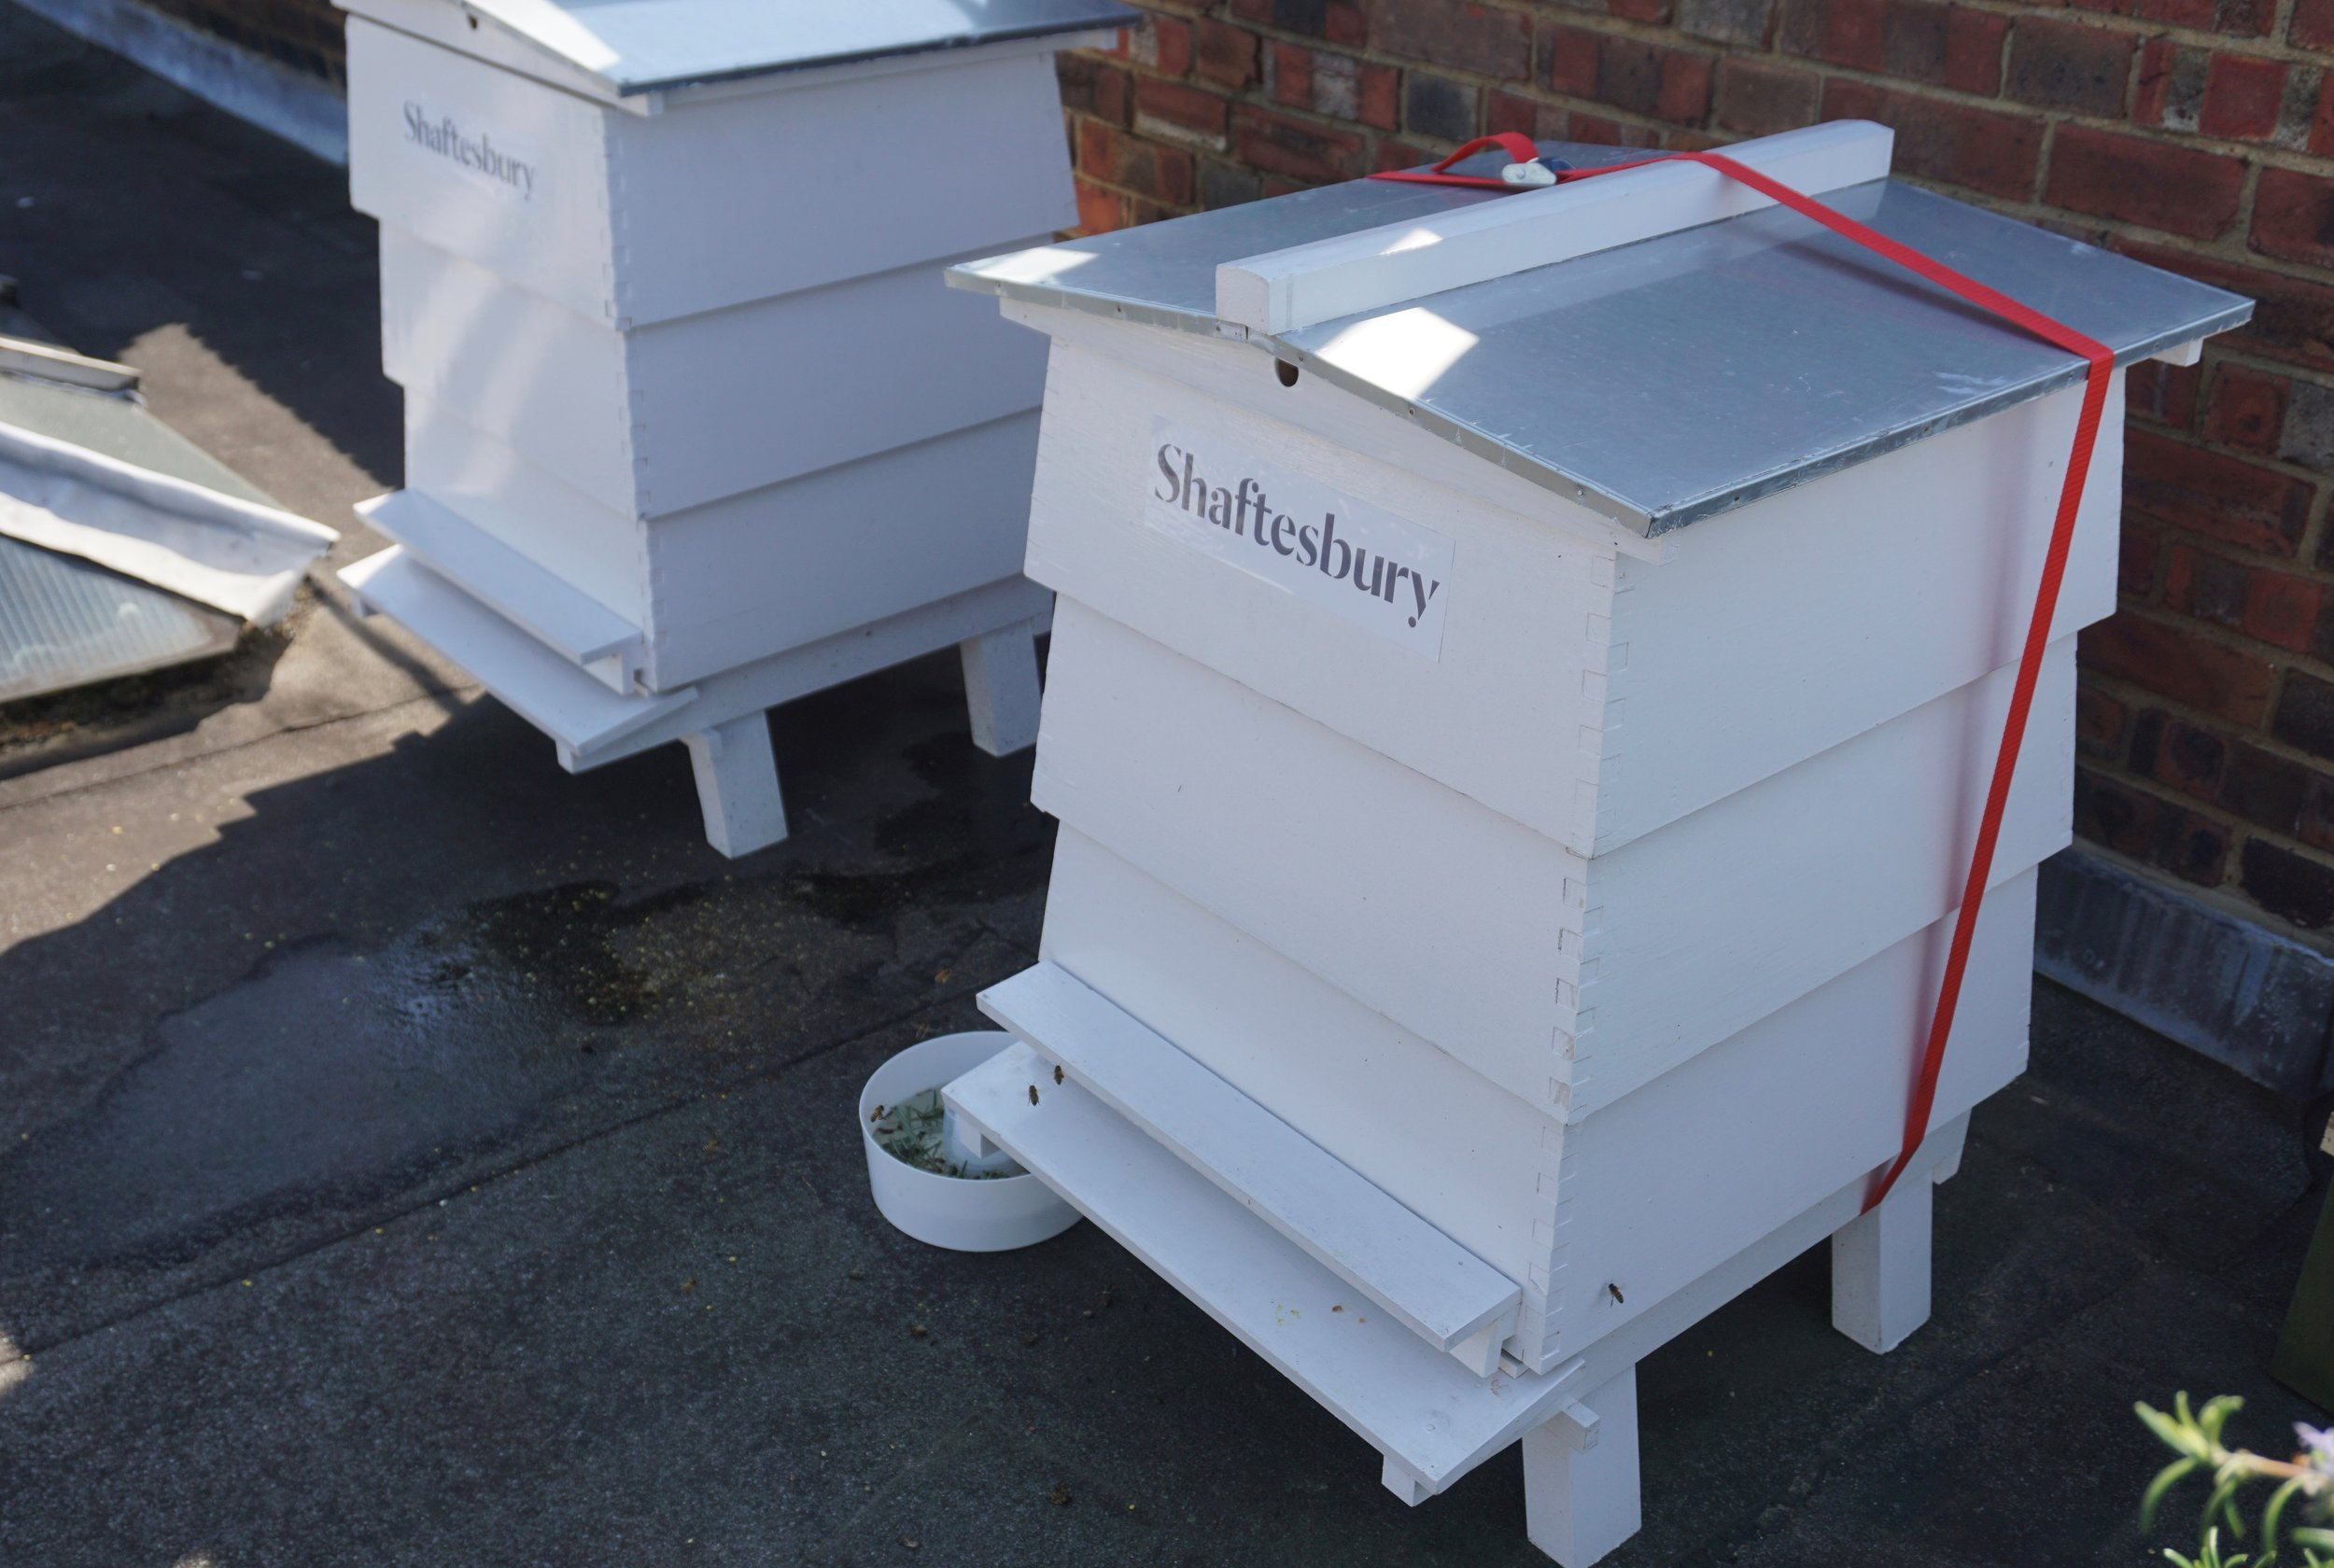 New Beehives in Shaftesbury.